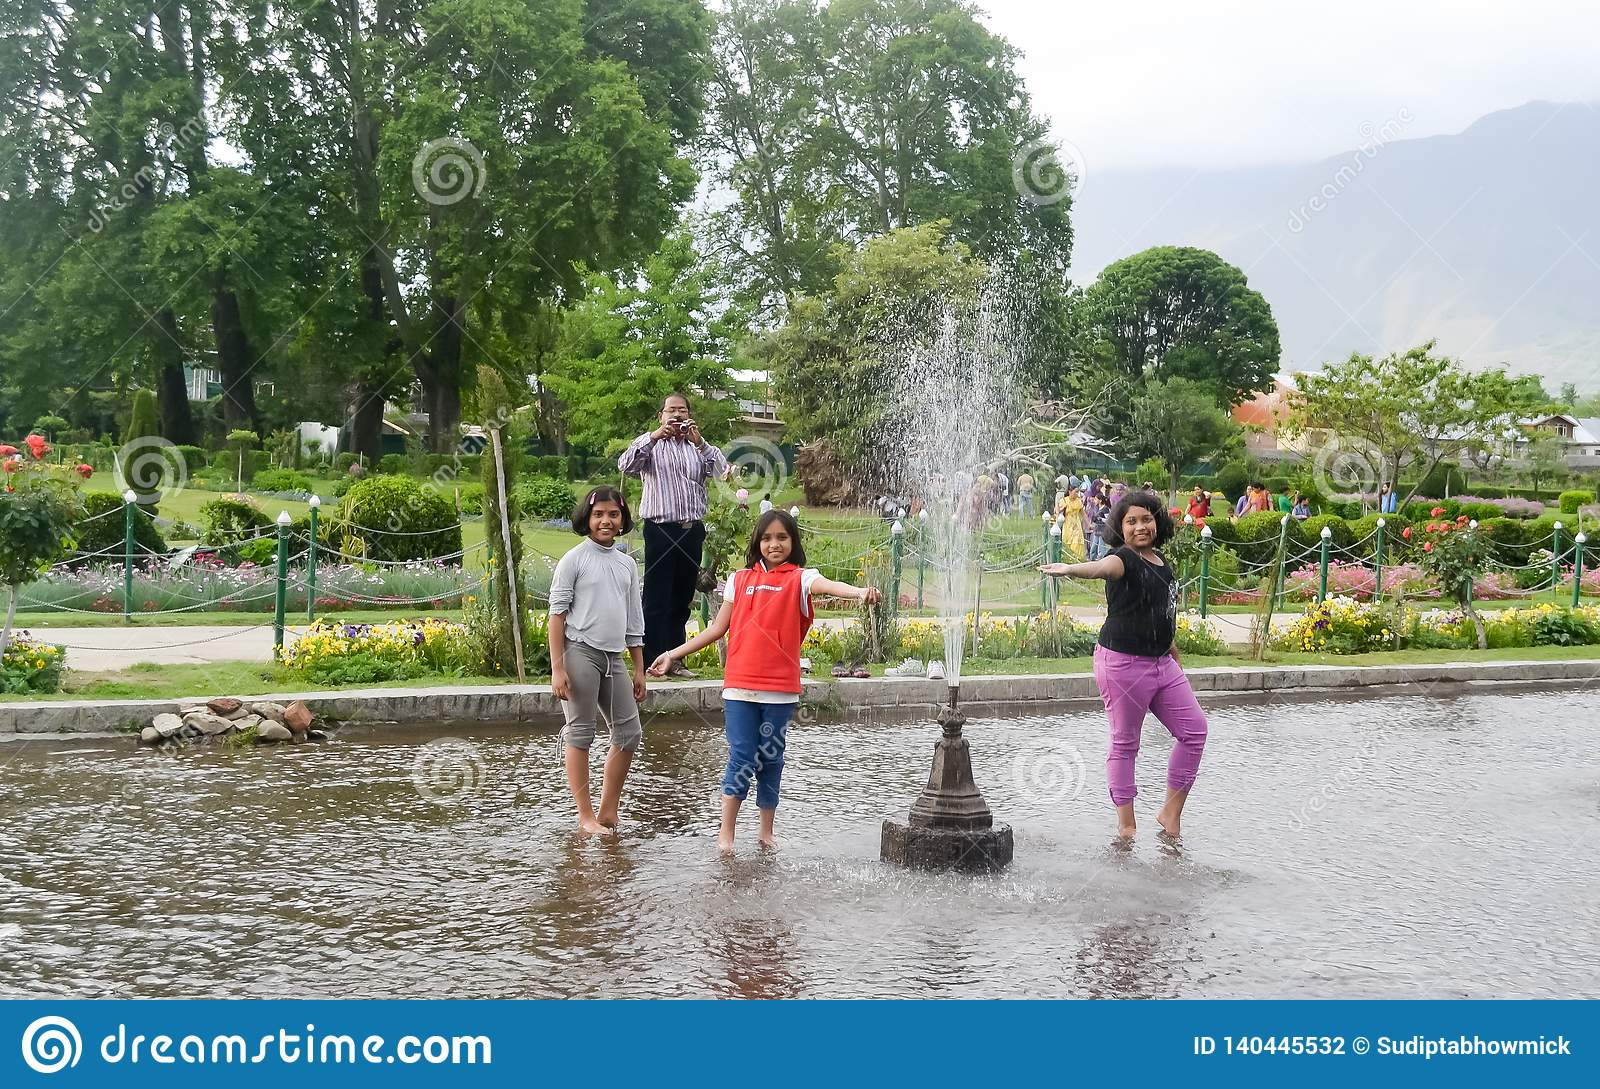 Shalimar Bagh, Mughal garden, January 10 2019: Kids enjoing the Water Show